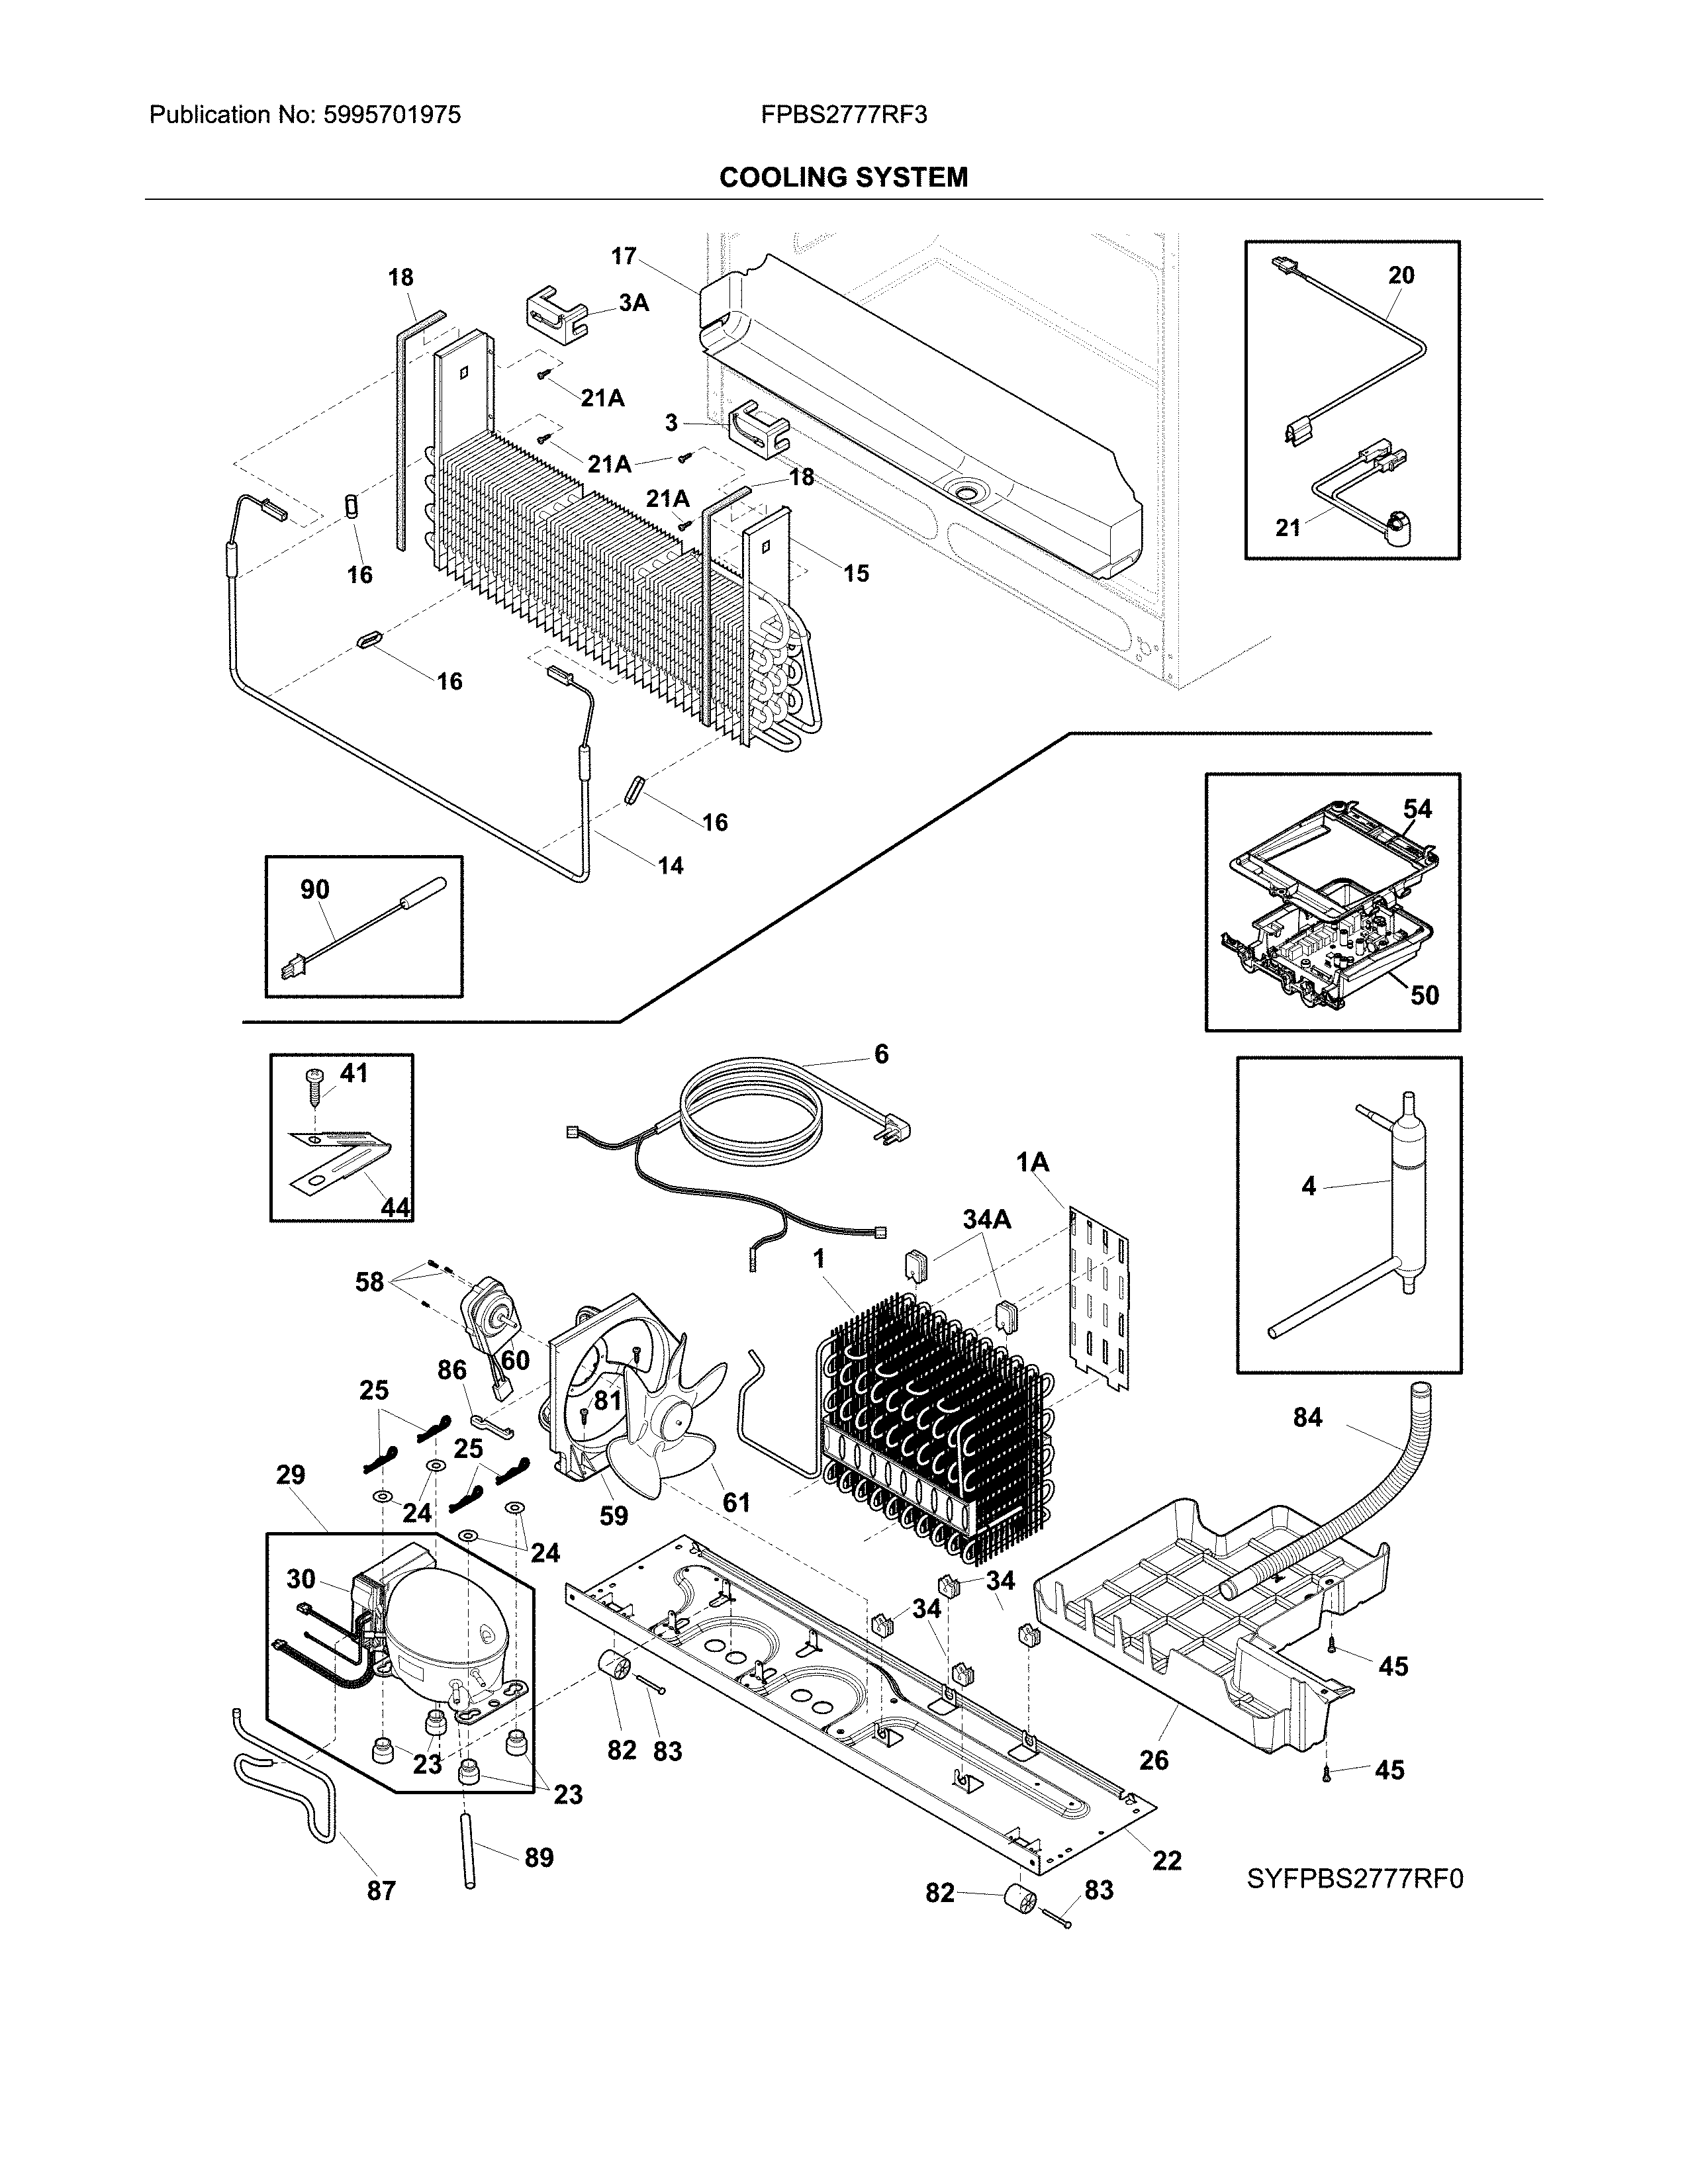 Frigidaire FPBS2777RF3 cooling system diagram